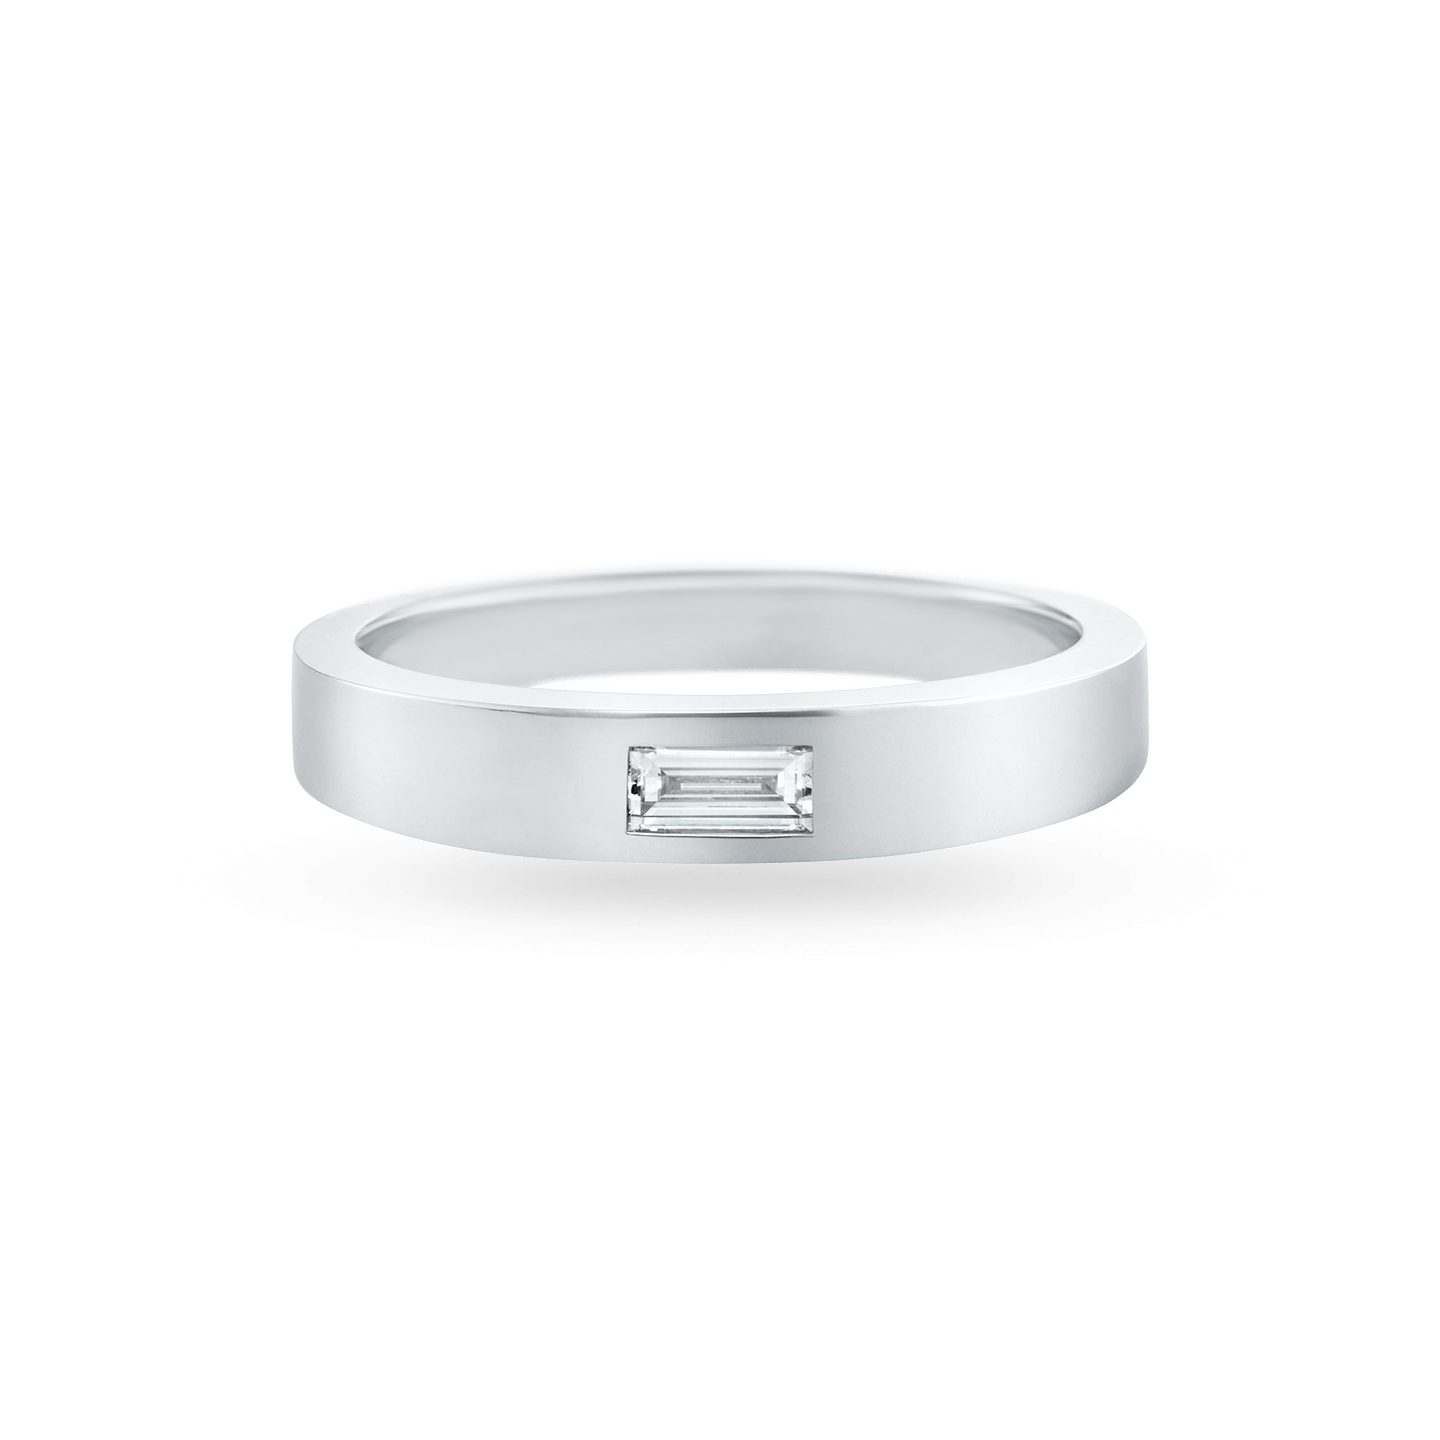 Baguette-Cut Single Diamond Wedding Band, Product Image 1